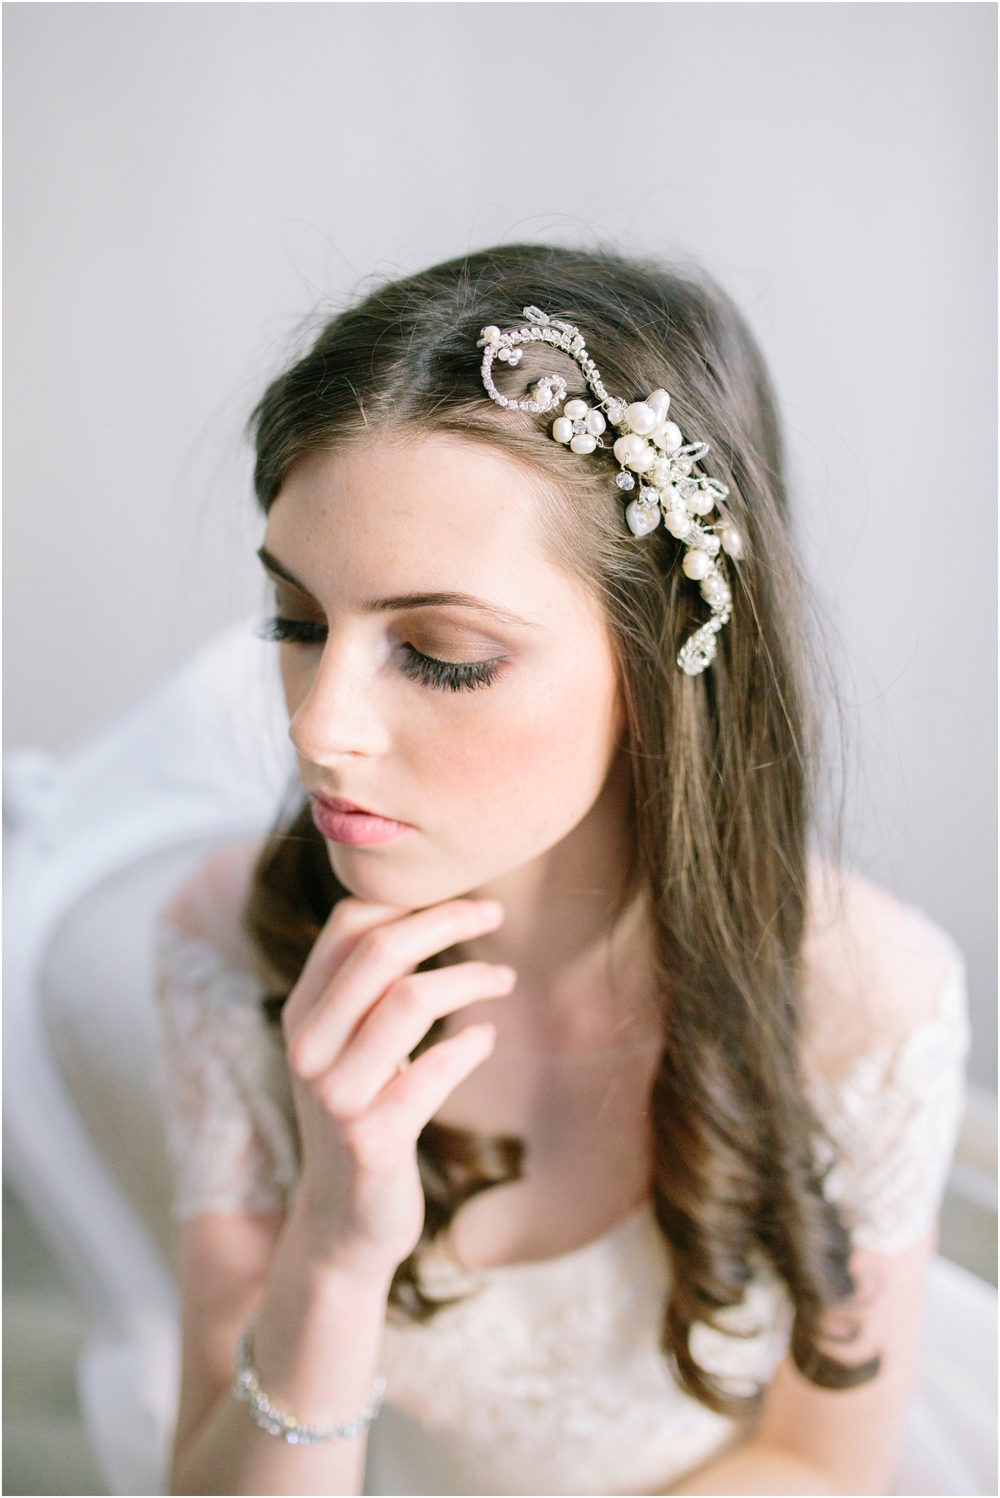 suzanne_li_photography_bridal_accessories_susan_dick_0044.jpg